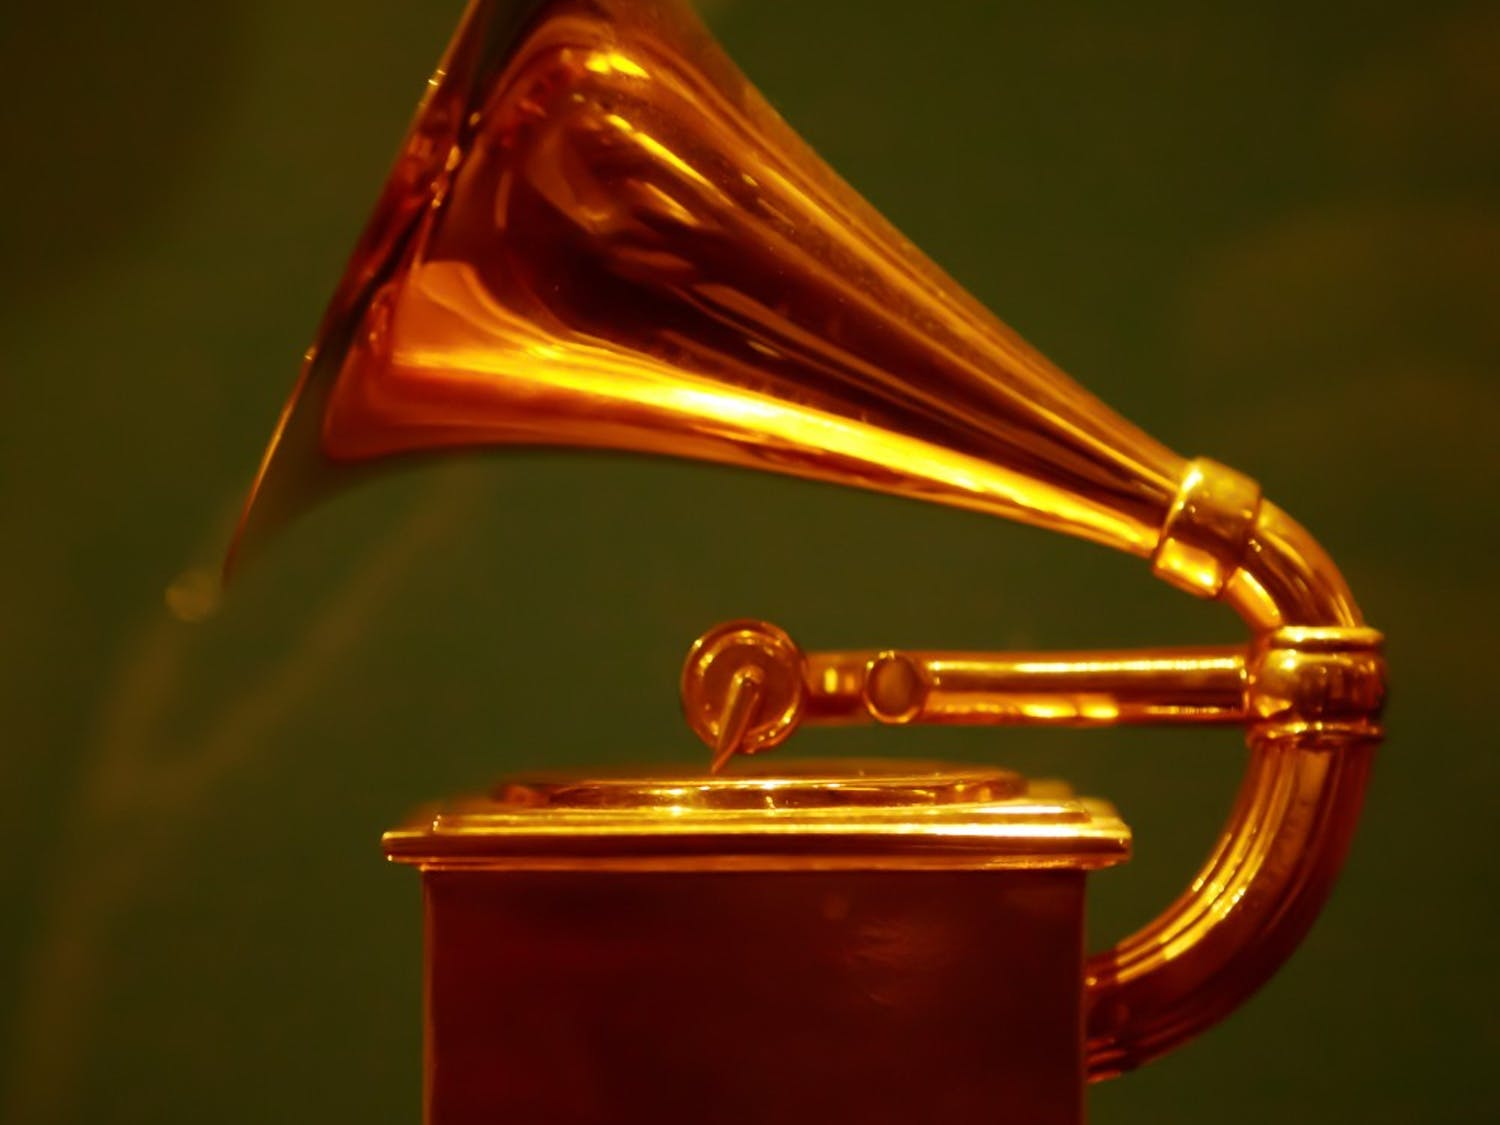 """The 60th Annual Grammy Awards, which take place on Jan. 28, boast a myriad of major R&B and hip hop nominations. From Childish Gambino to """"Despacito,"""" here are some of Arts Desk's big winners (and snubs) for music's biggest night."""